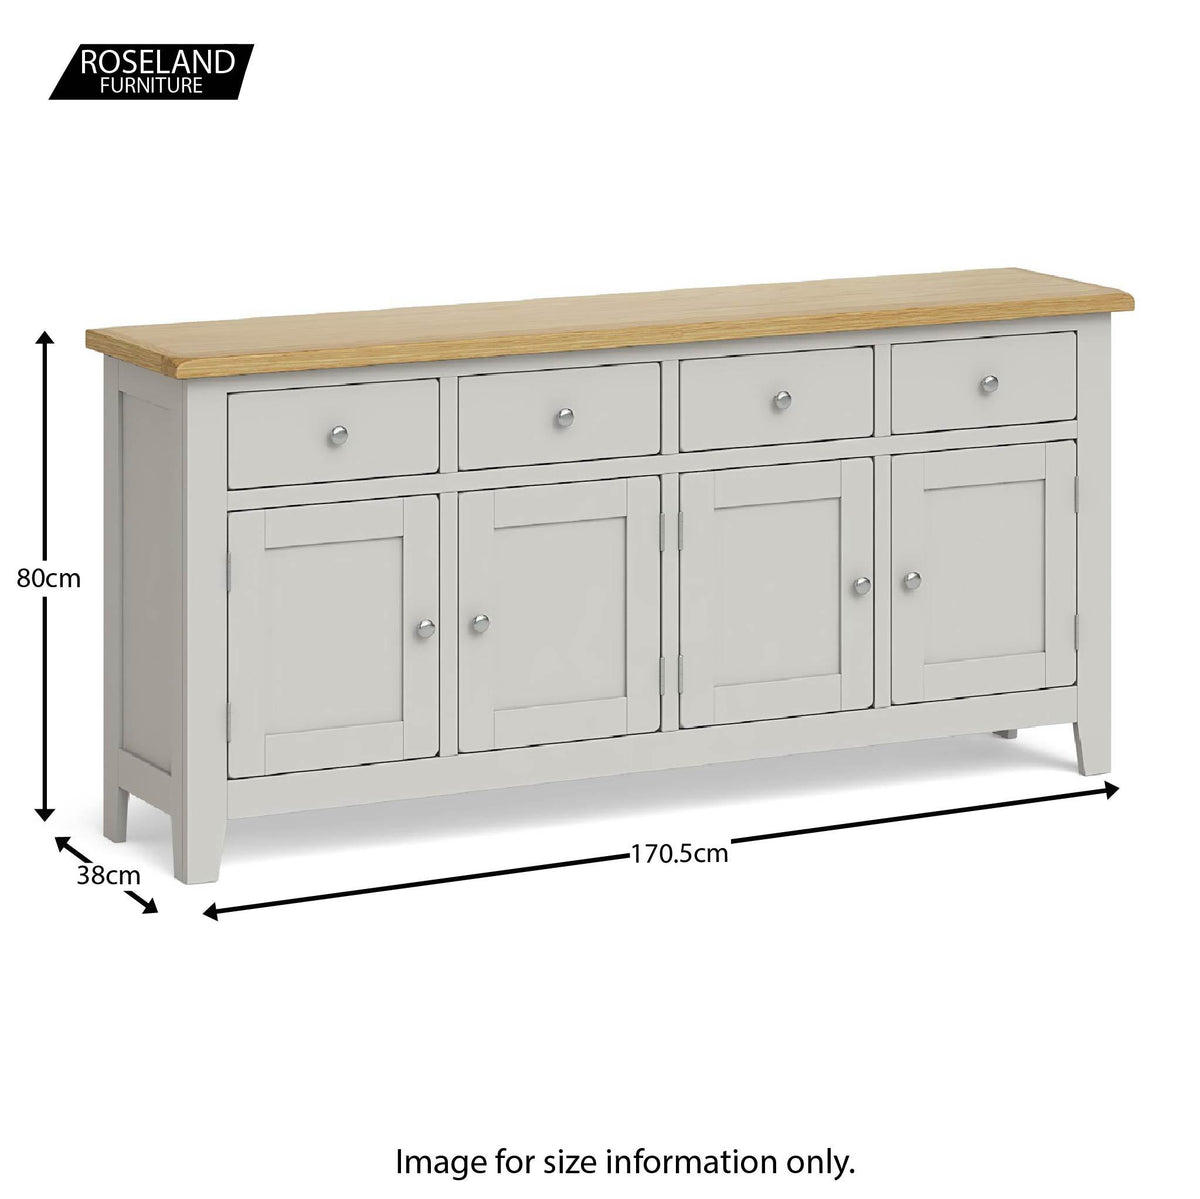 Lundy Grey Extra Large Sideboard Unit - Size guide